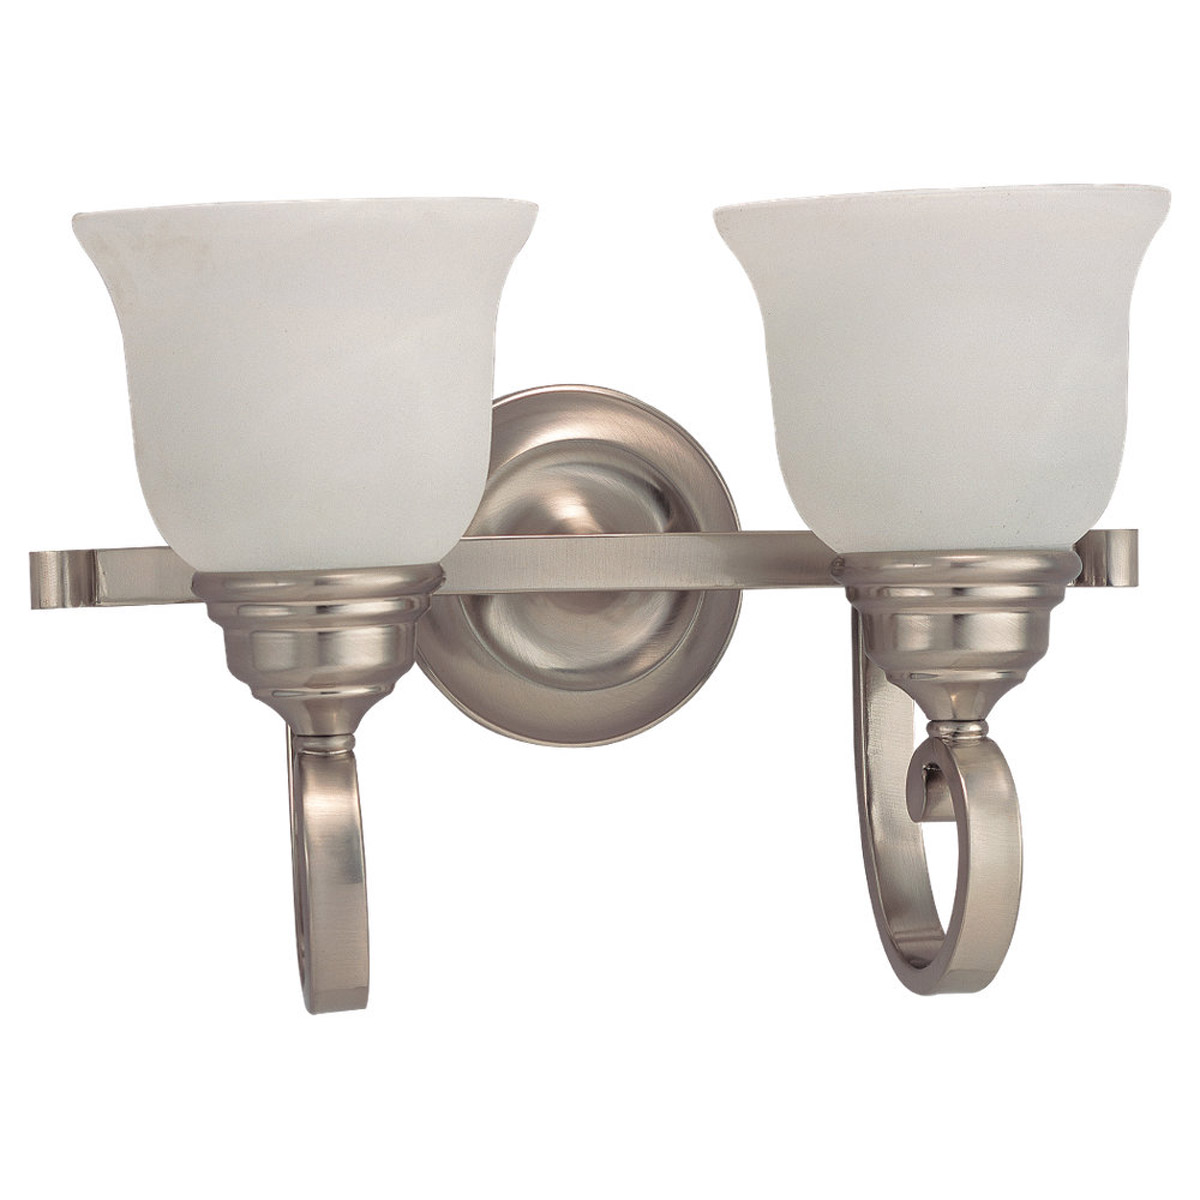 Sea Gull Lighting Serenity 2 Light Bath Vanity in Brushed Nickel 49059BLE-962 photo